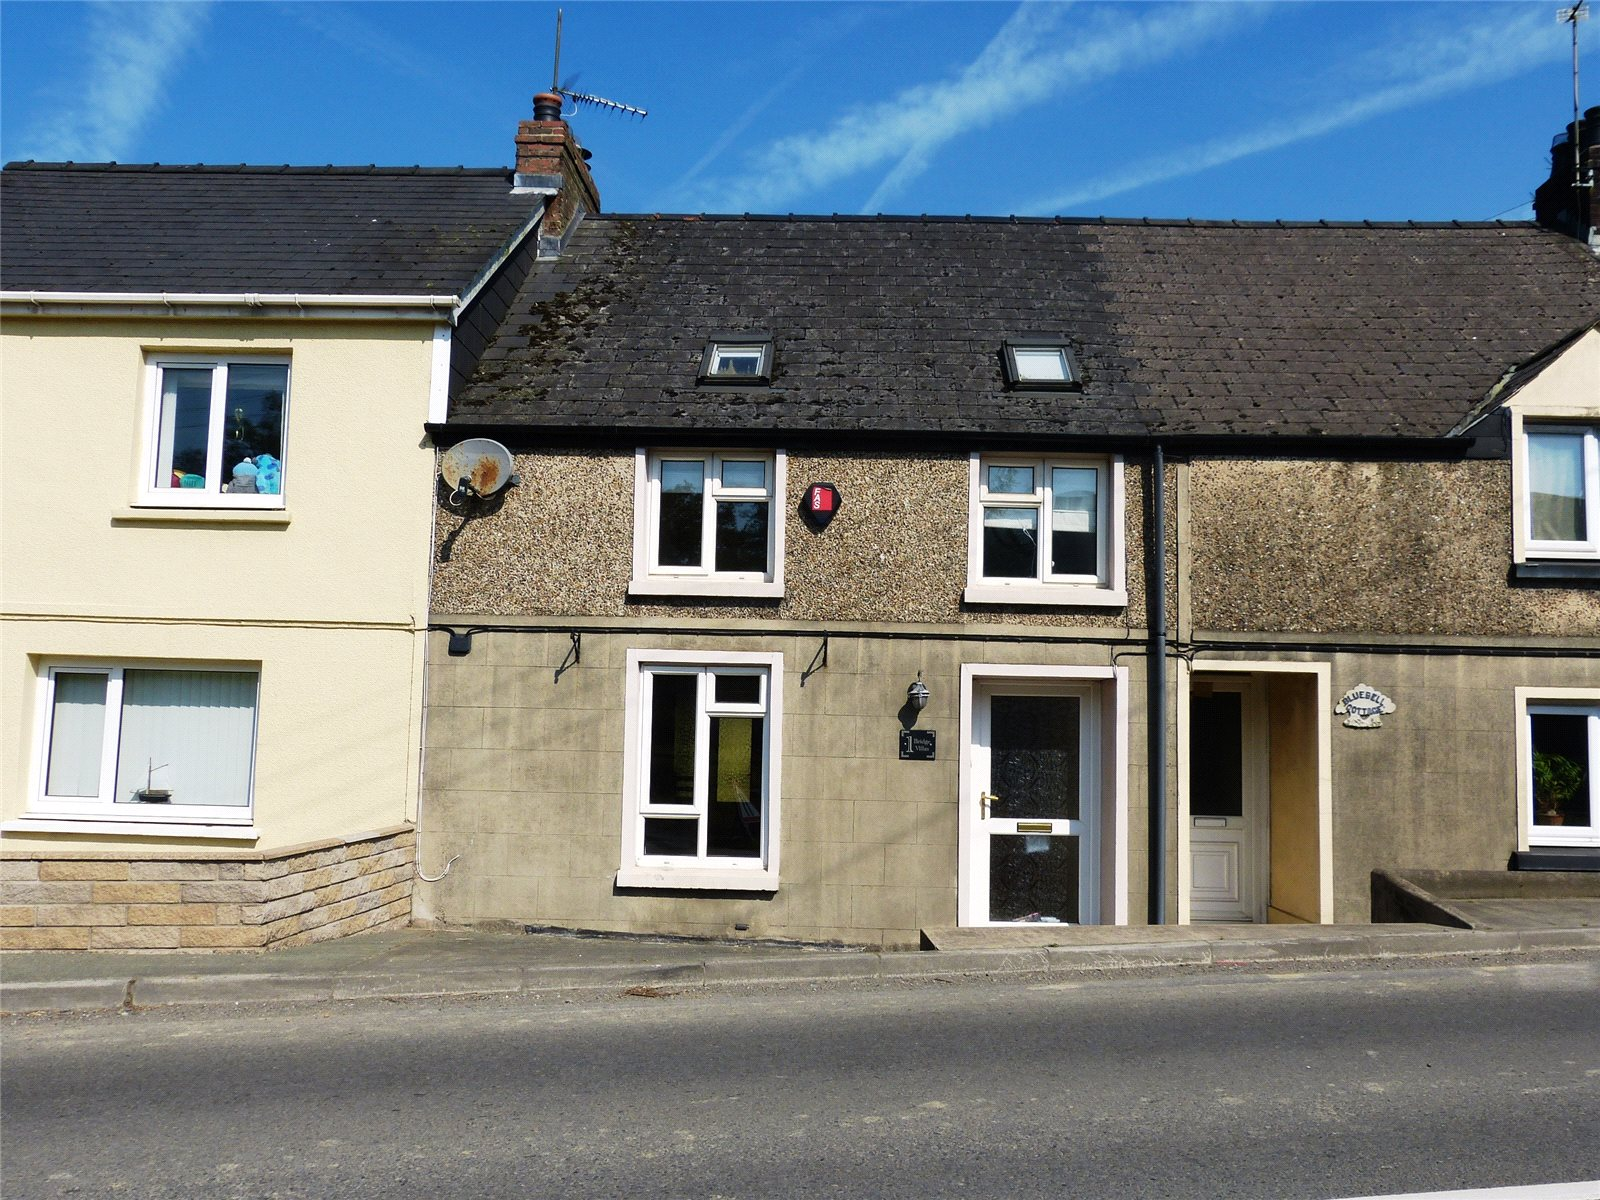 3 Bedrooms Terraced House for sale in Bridge Villas, Narberth, Pembrokeshire